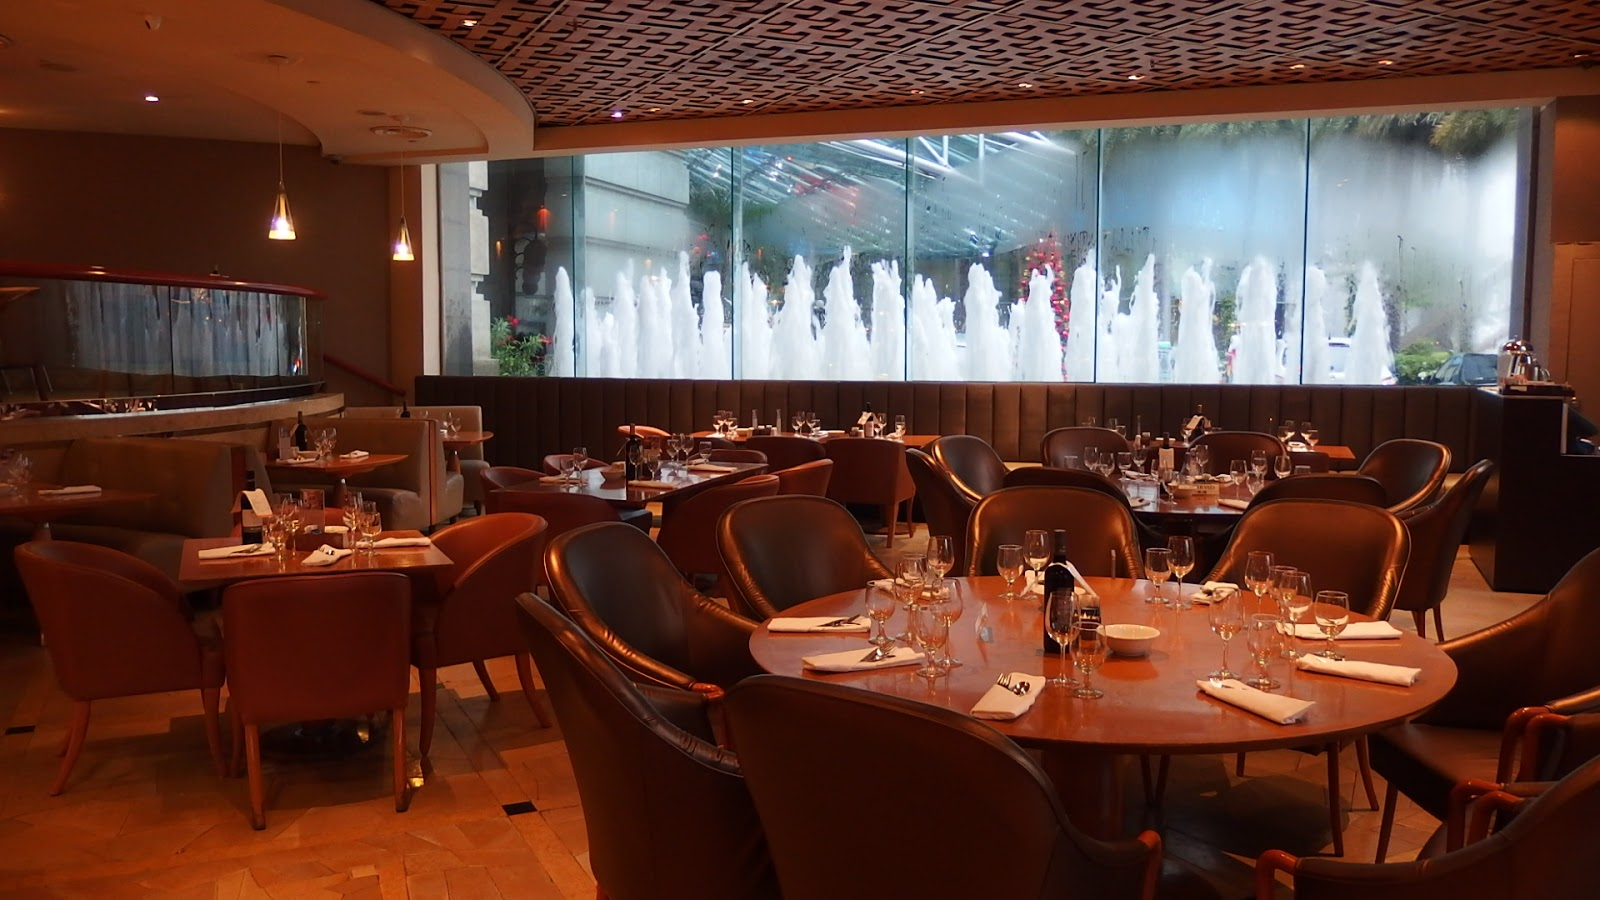 Dinner Buffet At Town Restaurant 1 Fullerton Square The Hotel Singapore Lobby Level 049178 Reservation 6877 8128